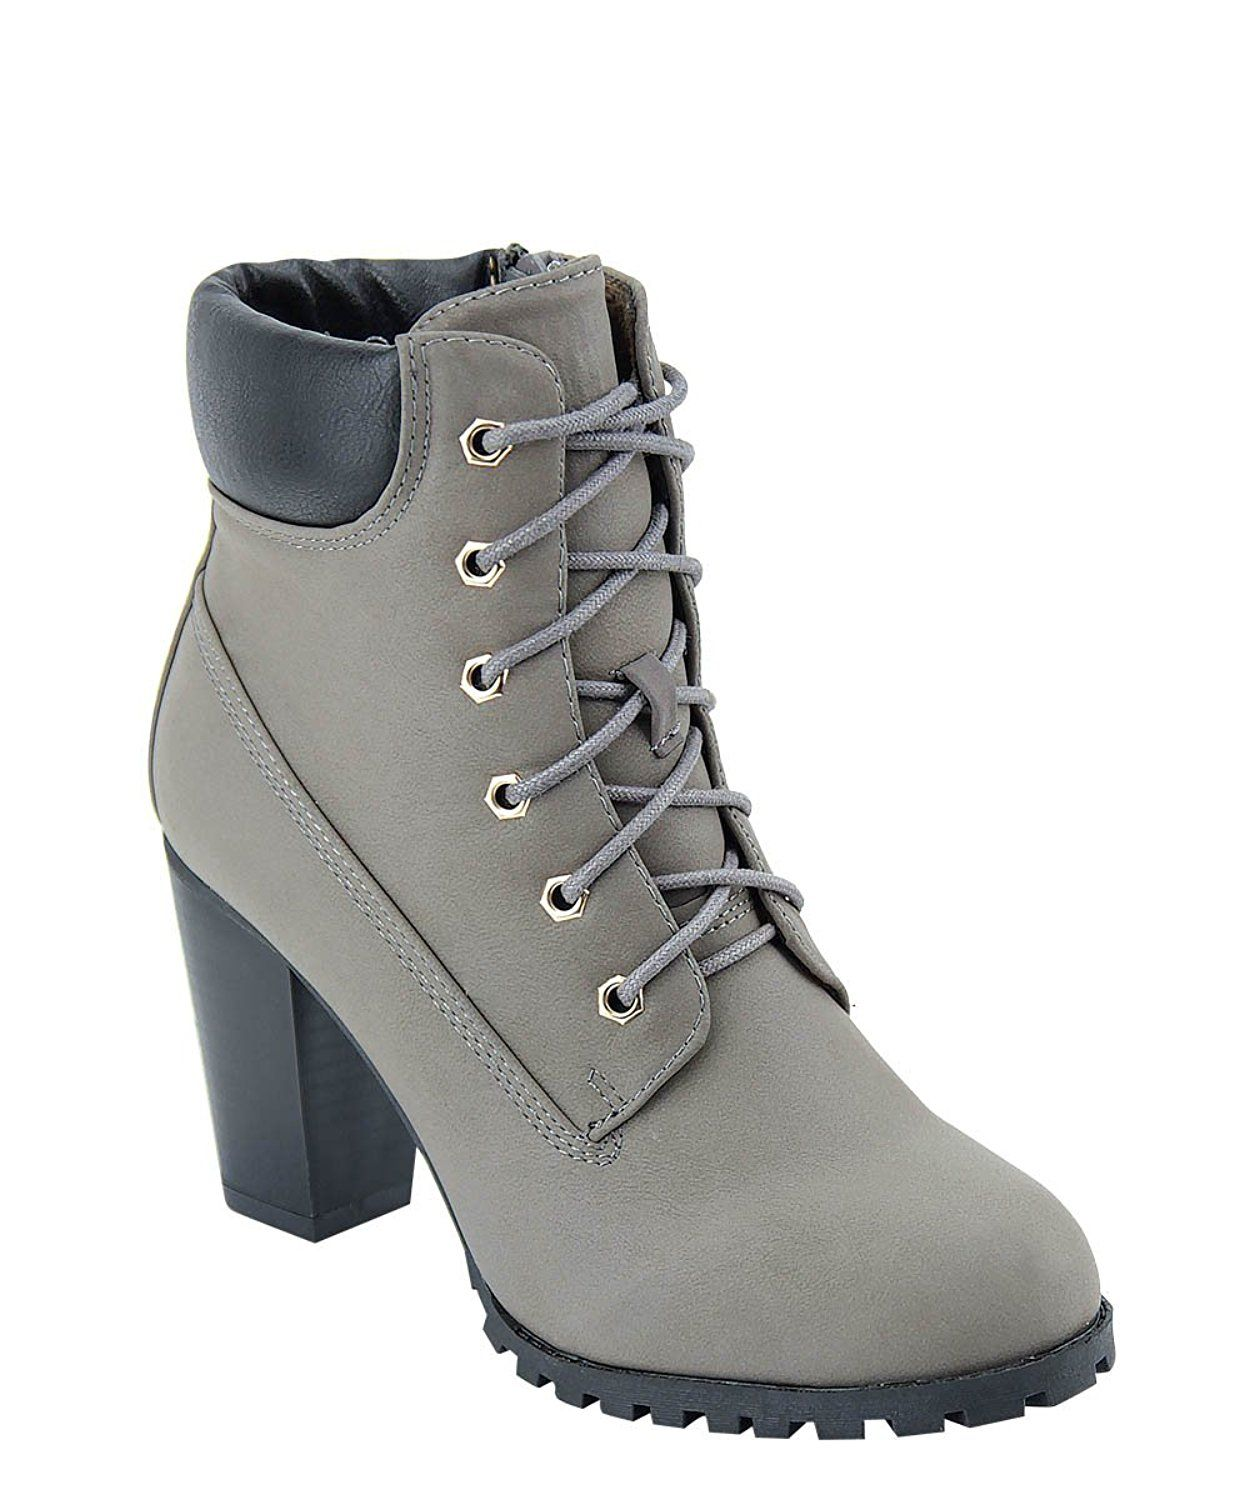 91dcd594f8b0 FW17 Fashion Boot Womens Rugged Lace Up Stacked High Heel Ankle Boots